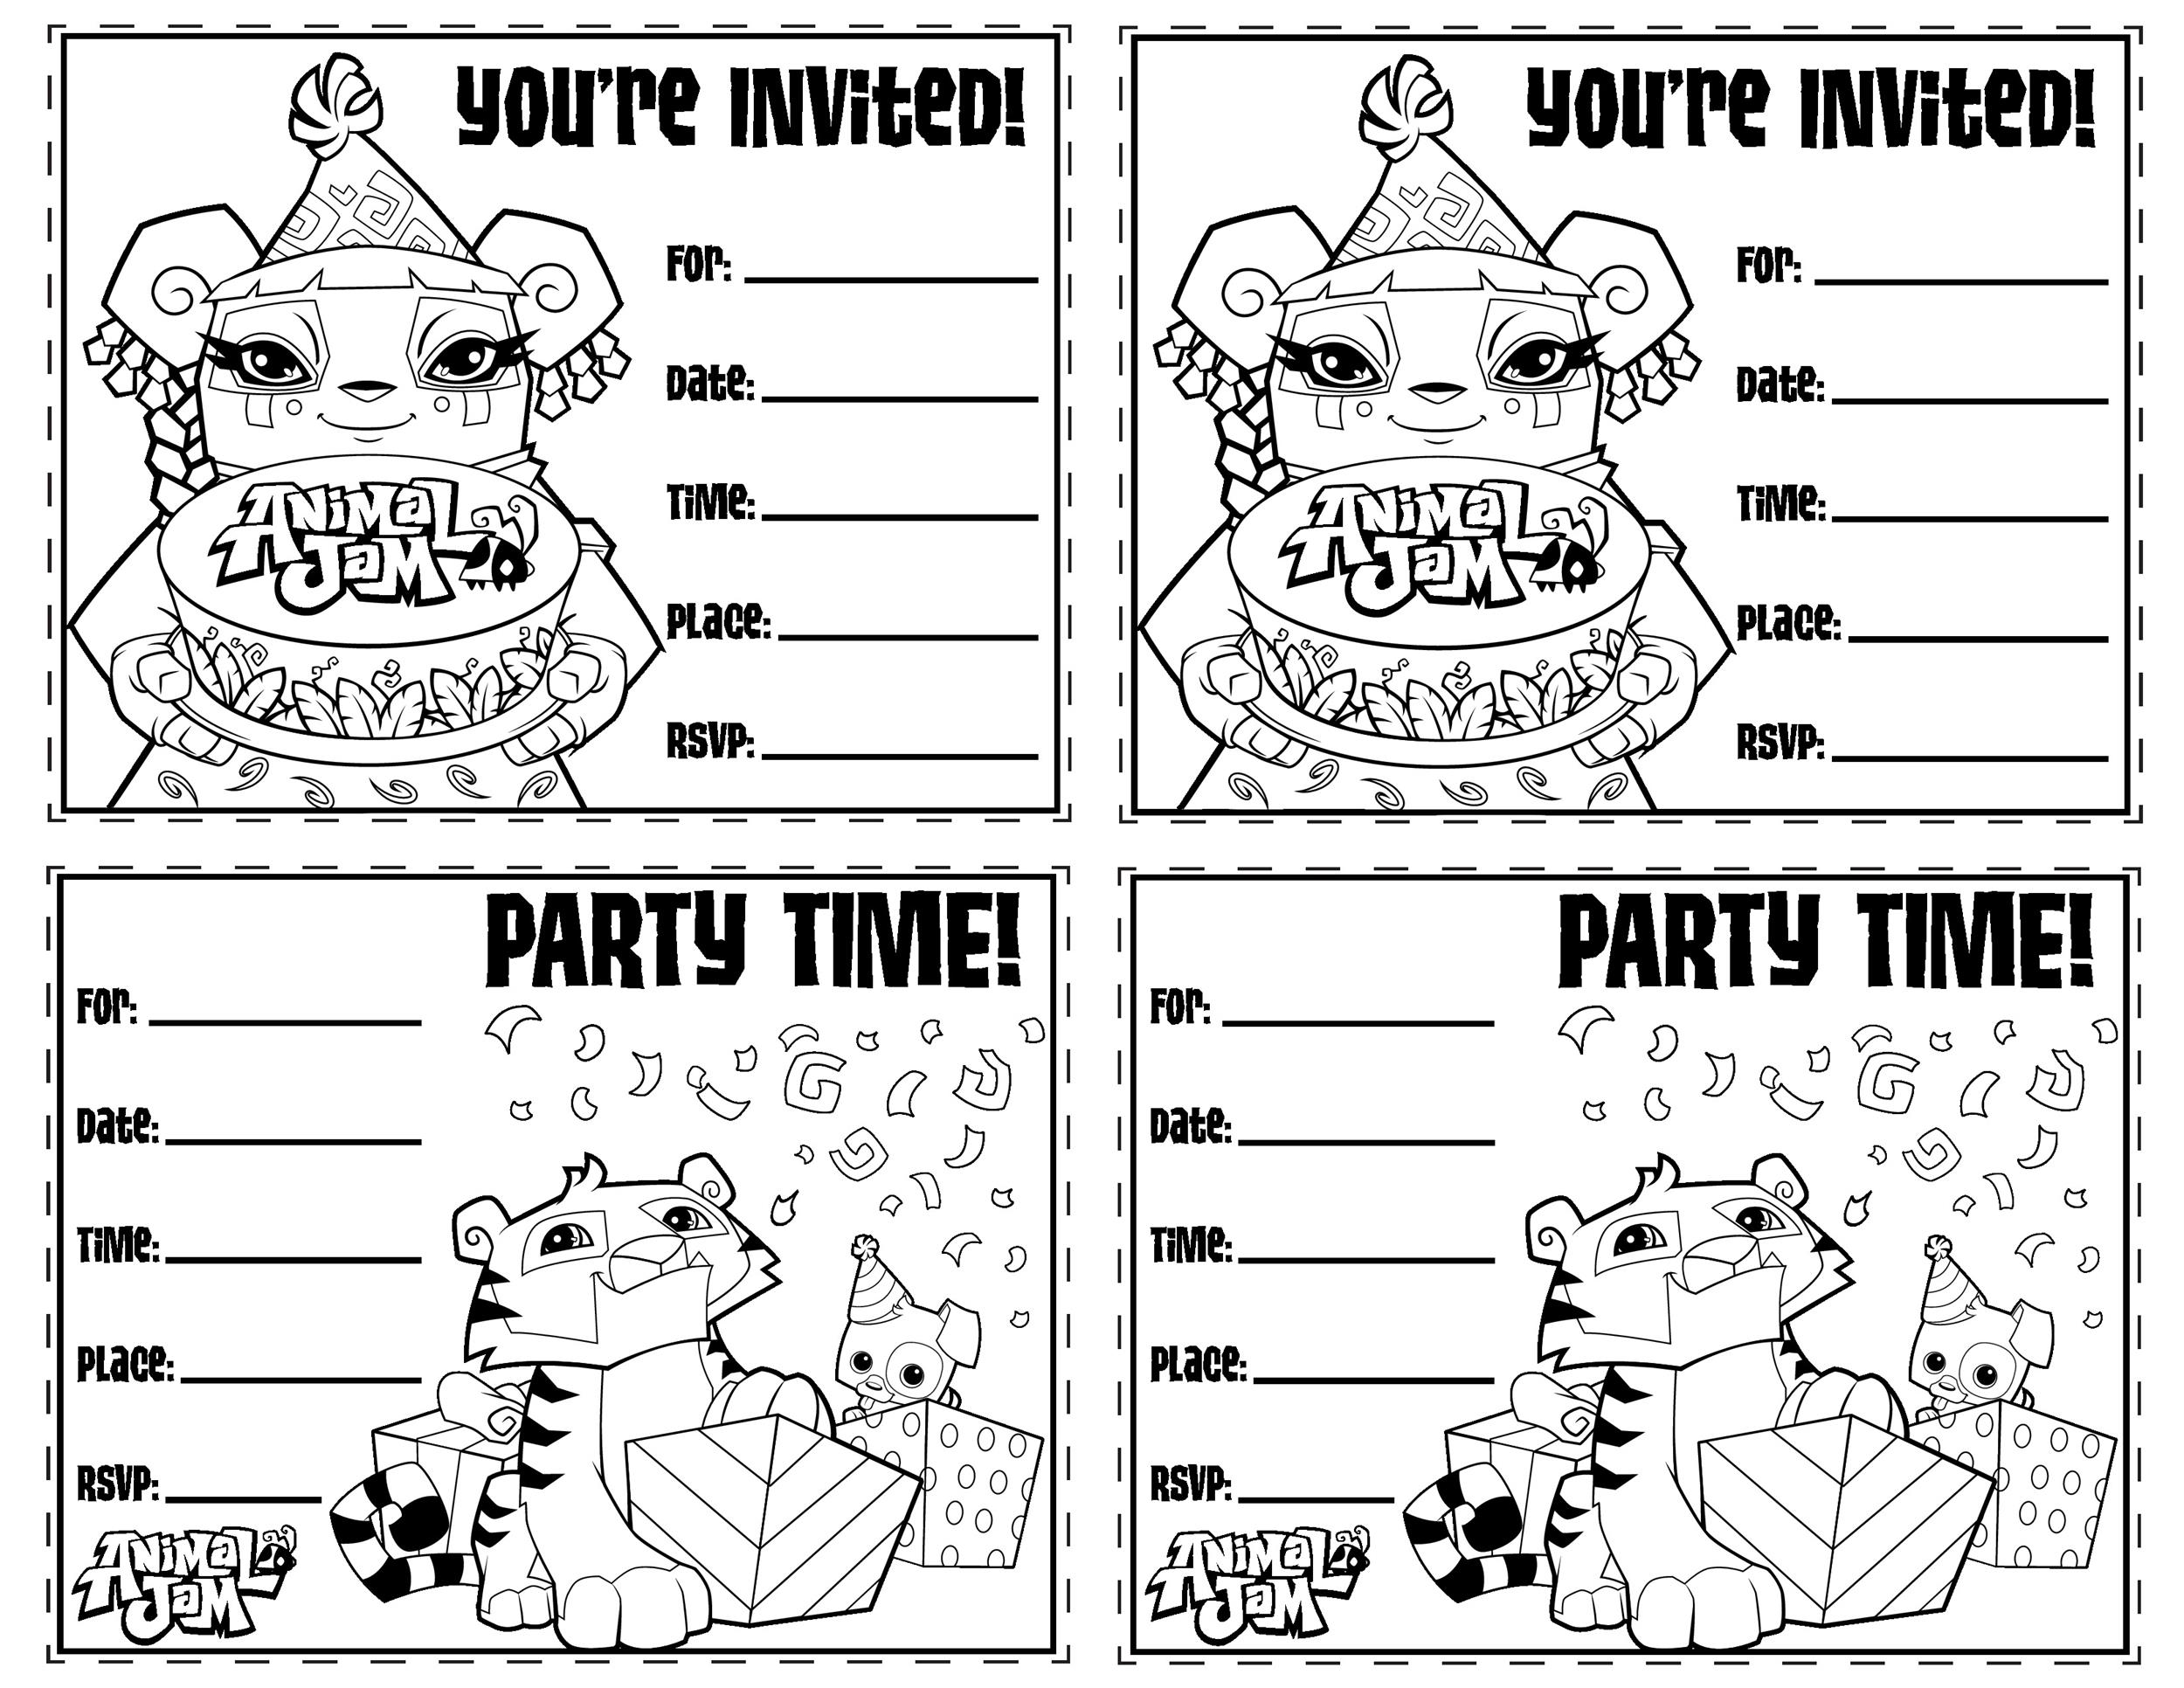 40 free birthday party invitation templates template lab free birthday invitation template 02 filmwisefo